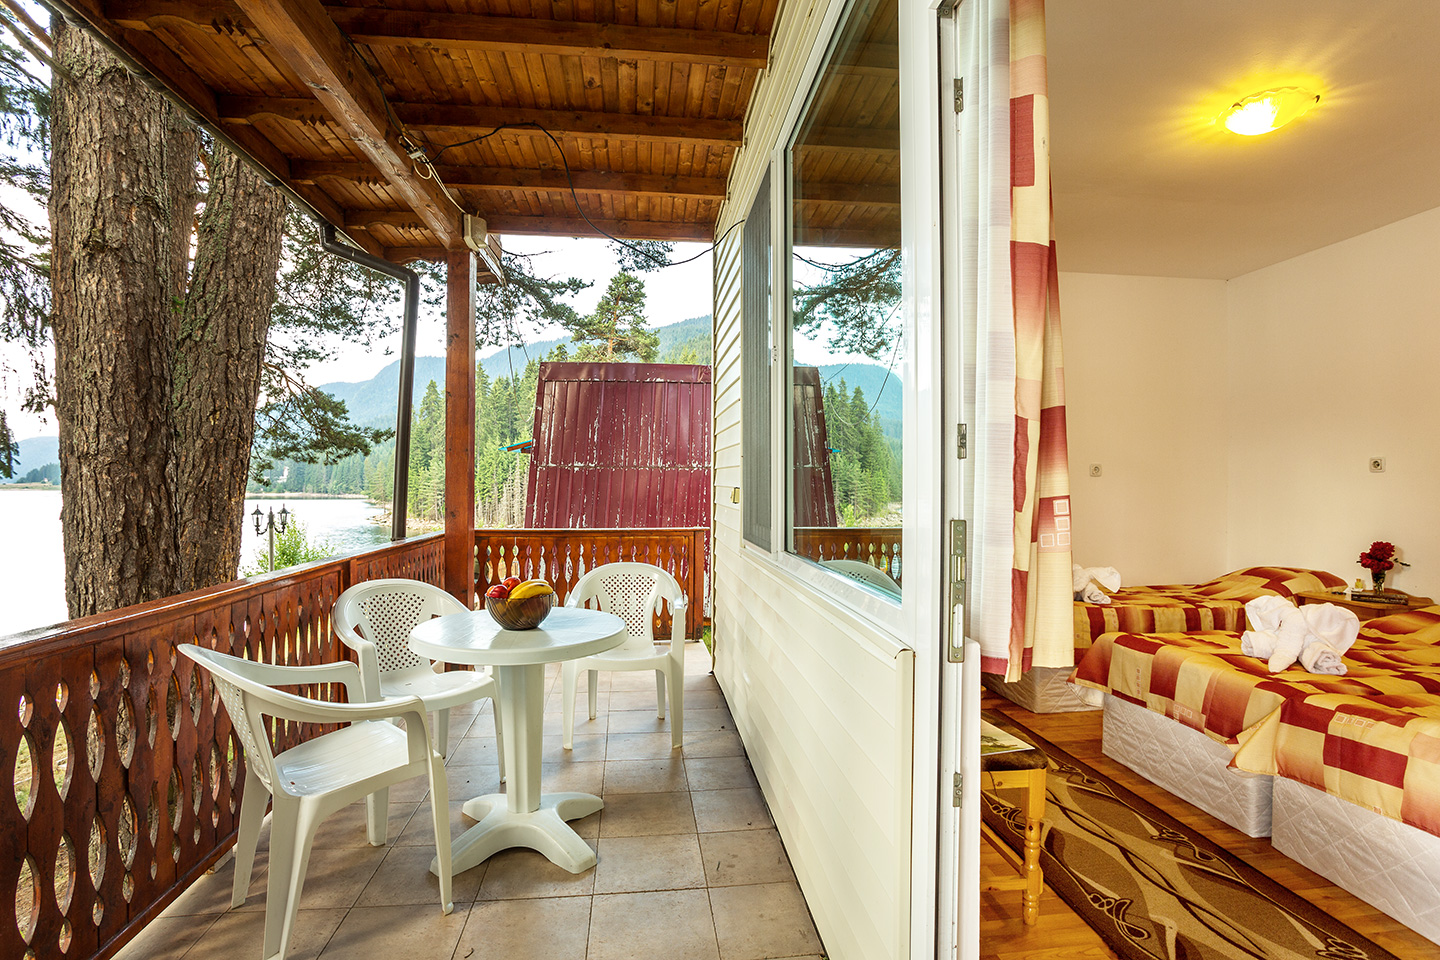 The one storey houses are 2 each with 2 triple rooms the rooms are simply furnished but with everything necessary for a comfortable stay and relaxing